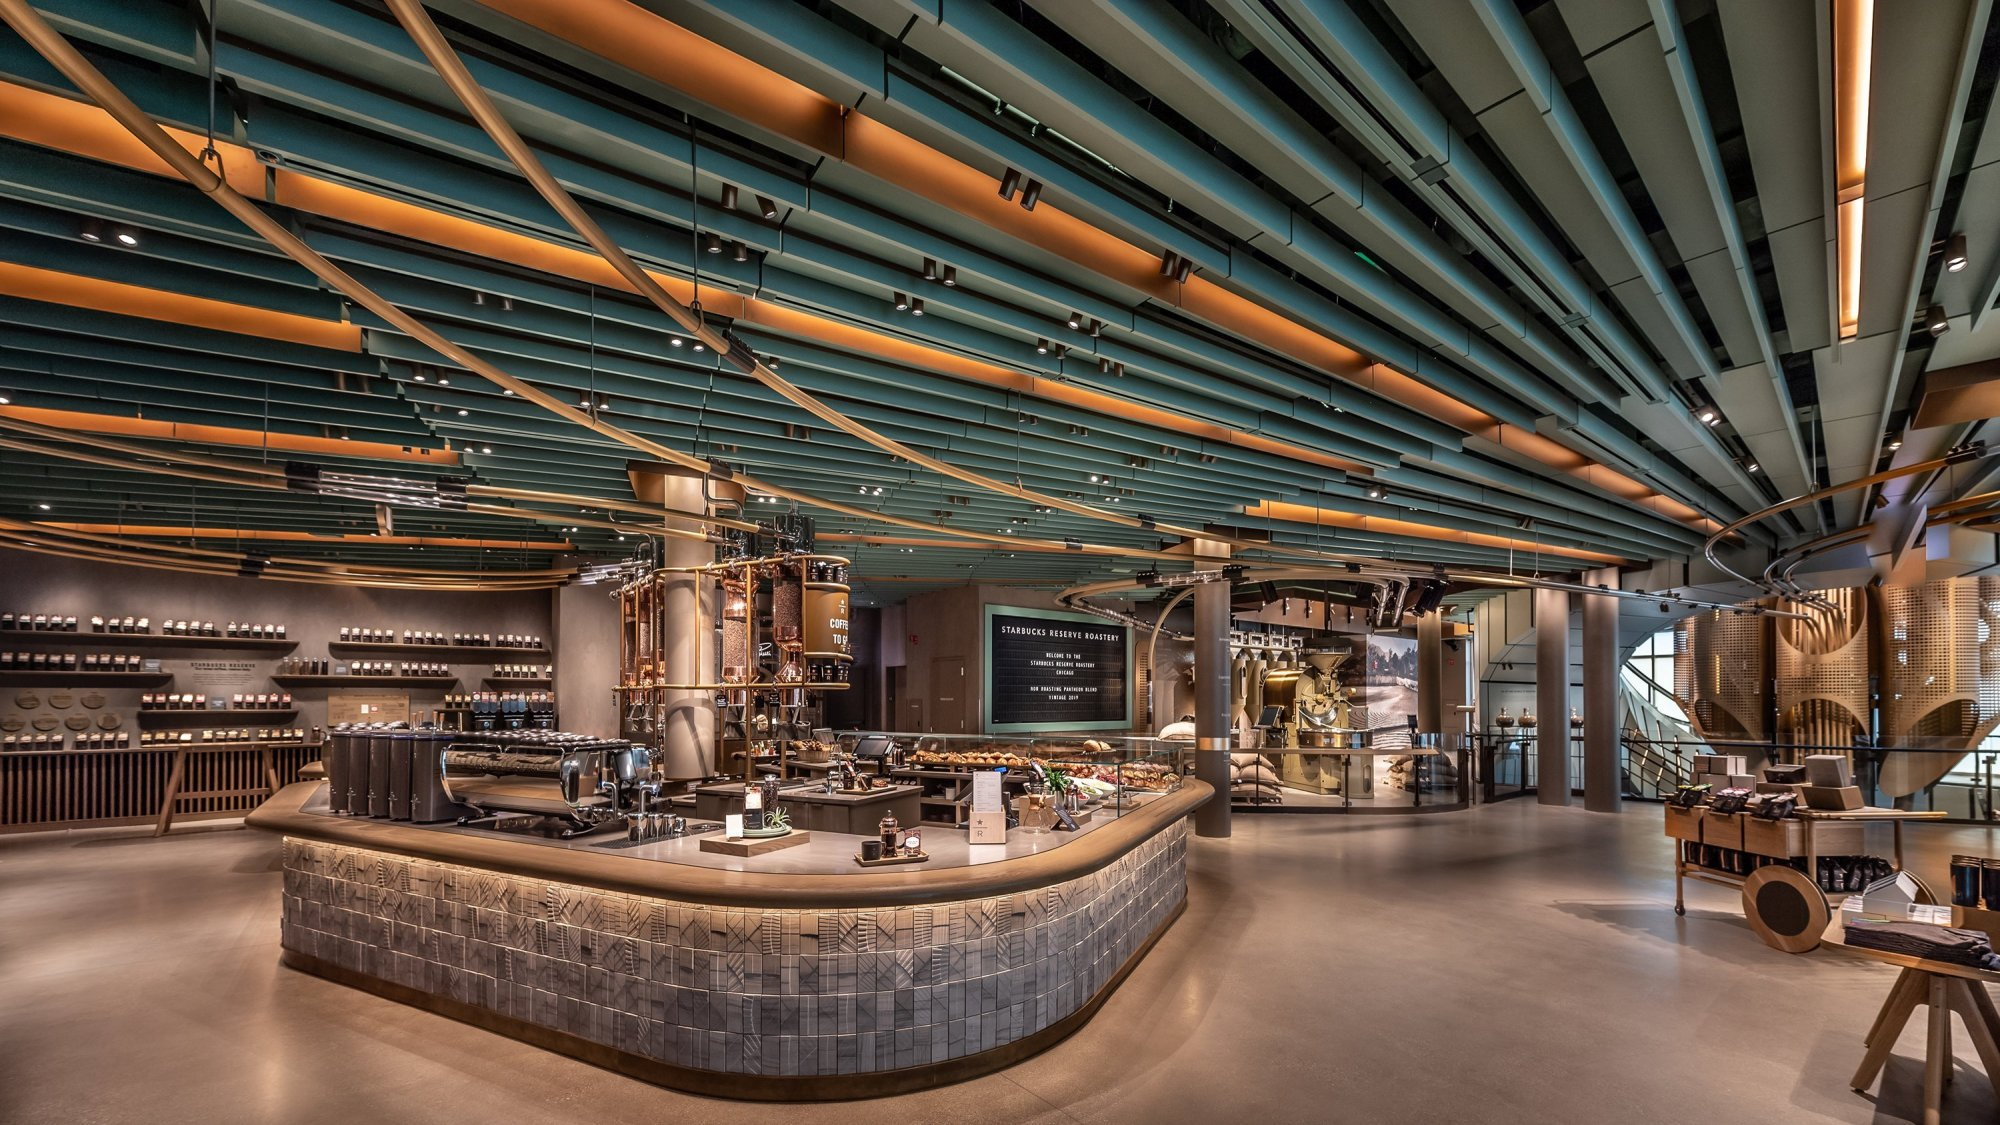 The interior of the Starbucks Roastery in Chicago.